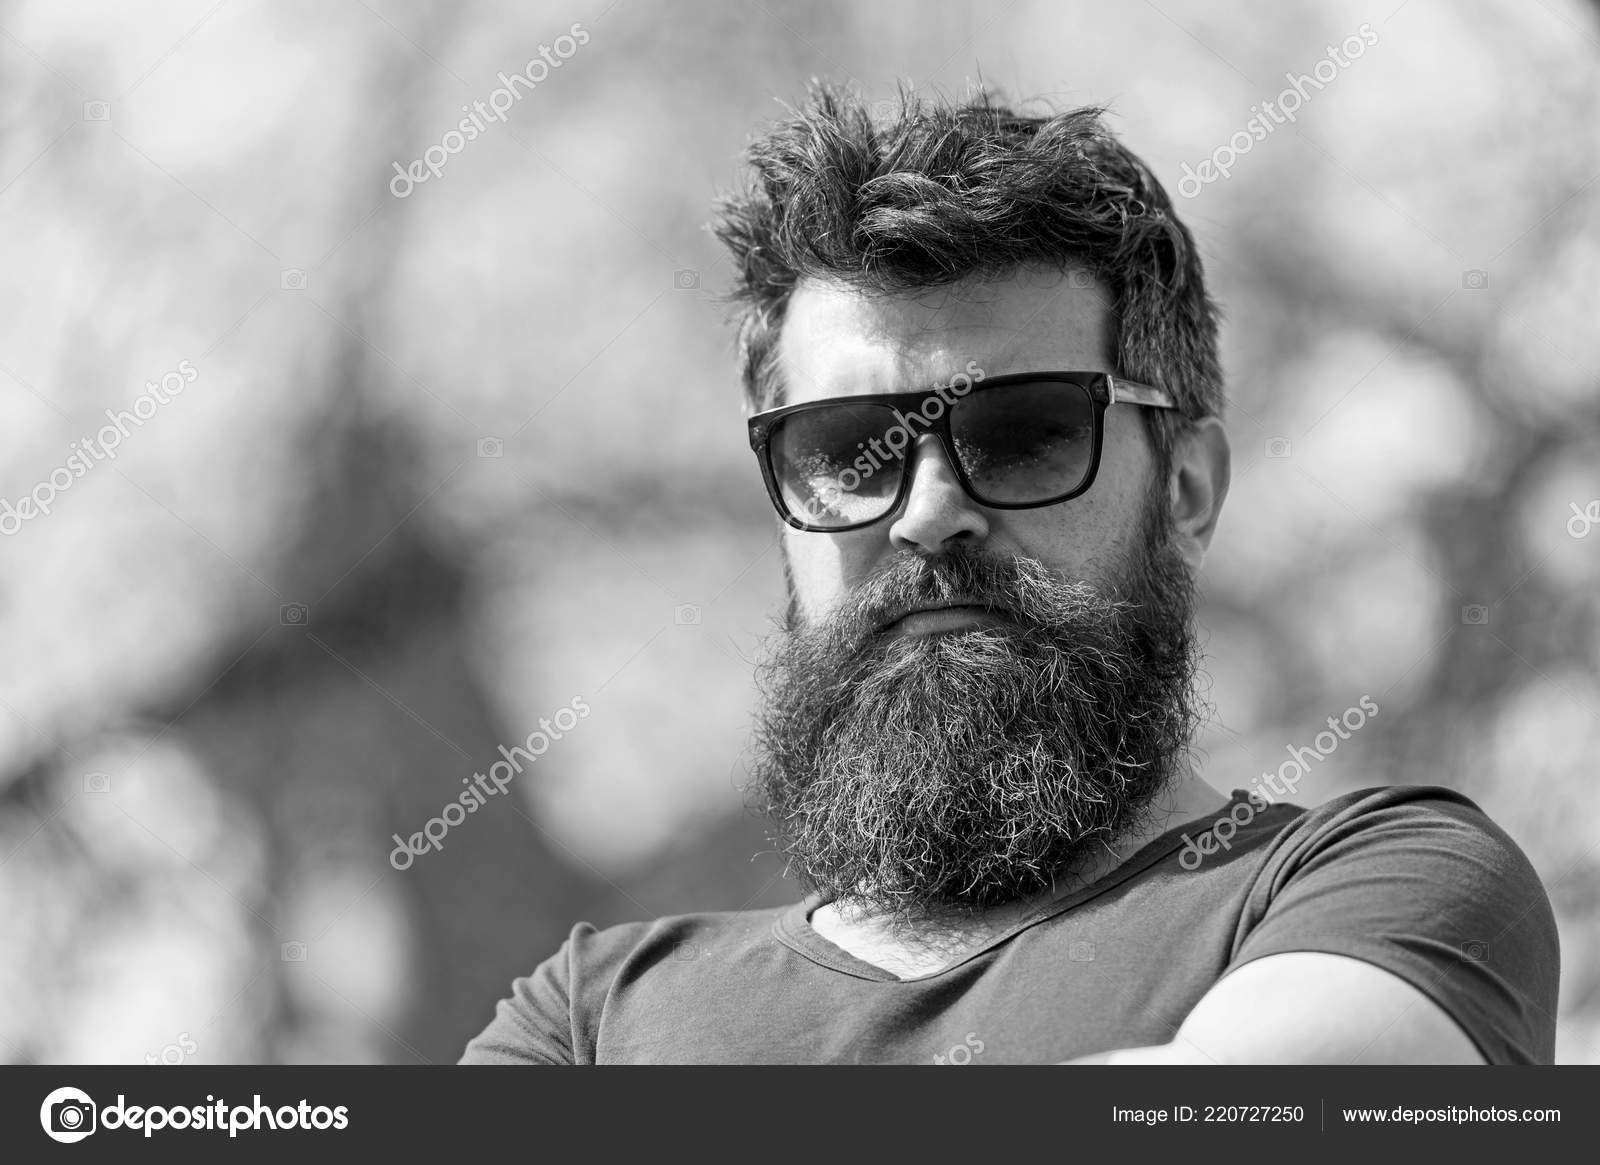 cb2d94cfb04 Bearded guy wears stylish sunglasses. Man with beard looks stylish and  confident on sunny day. Fashion and style concept.